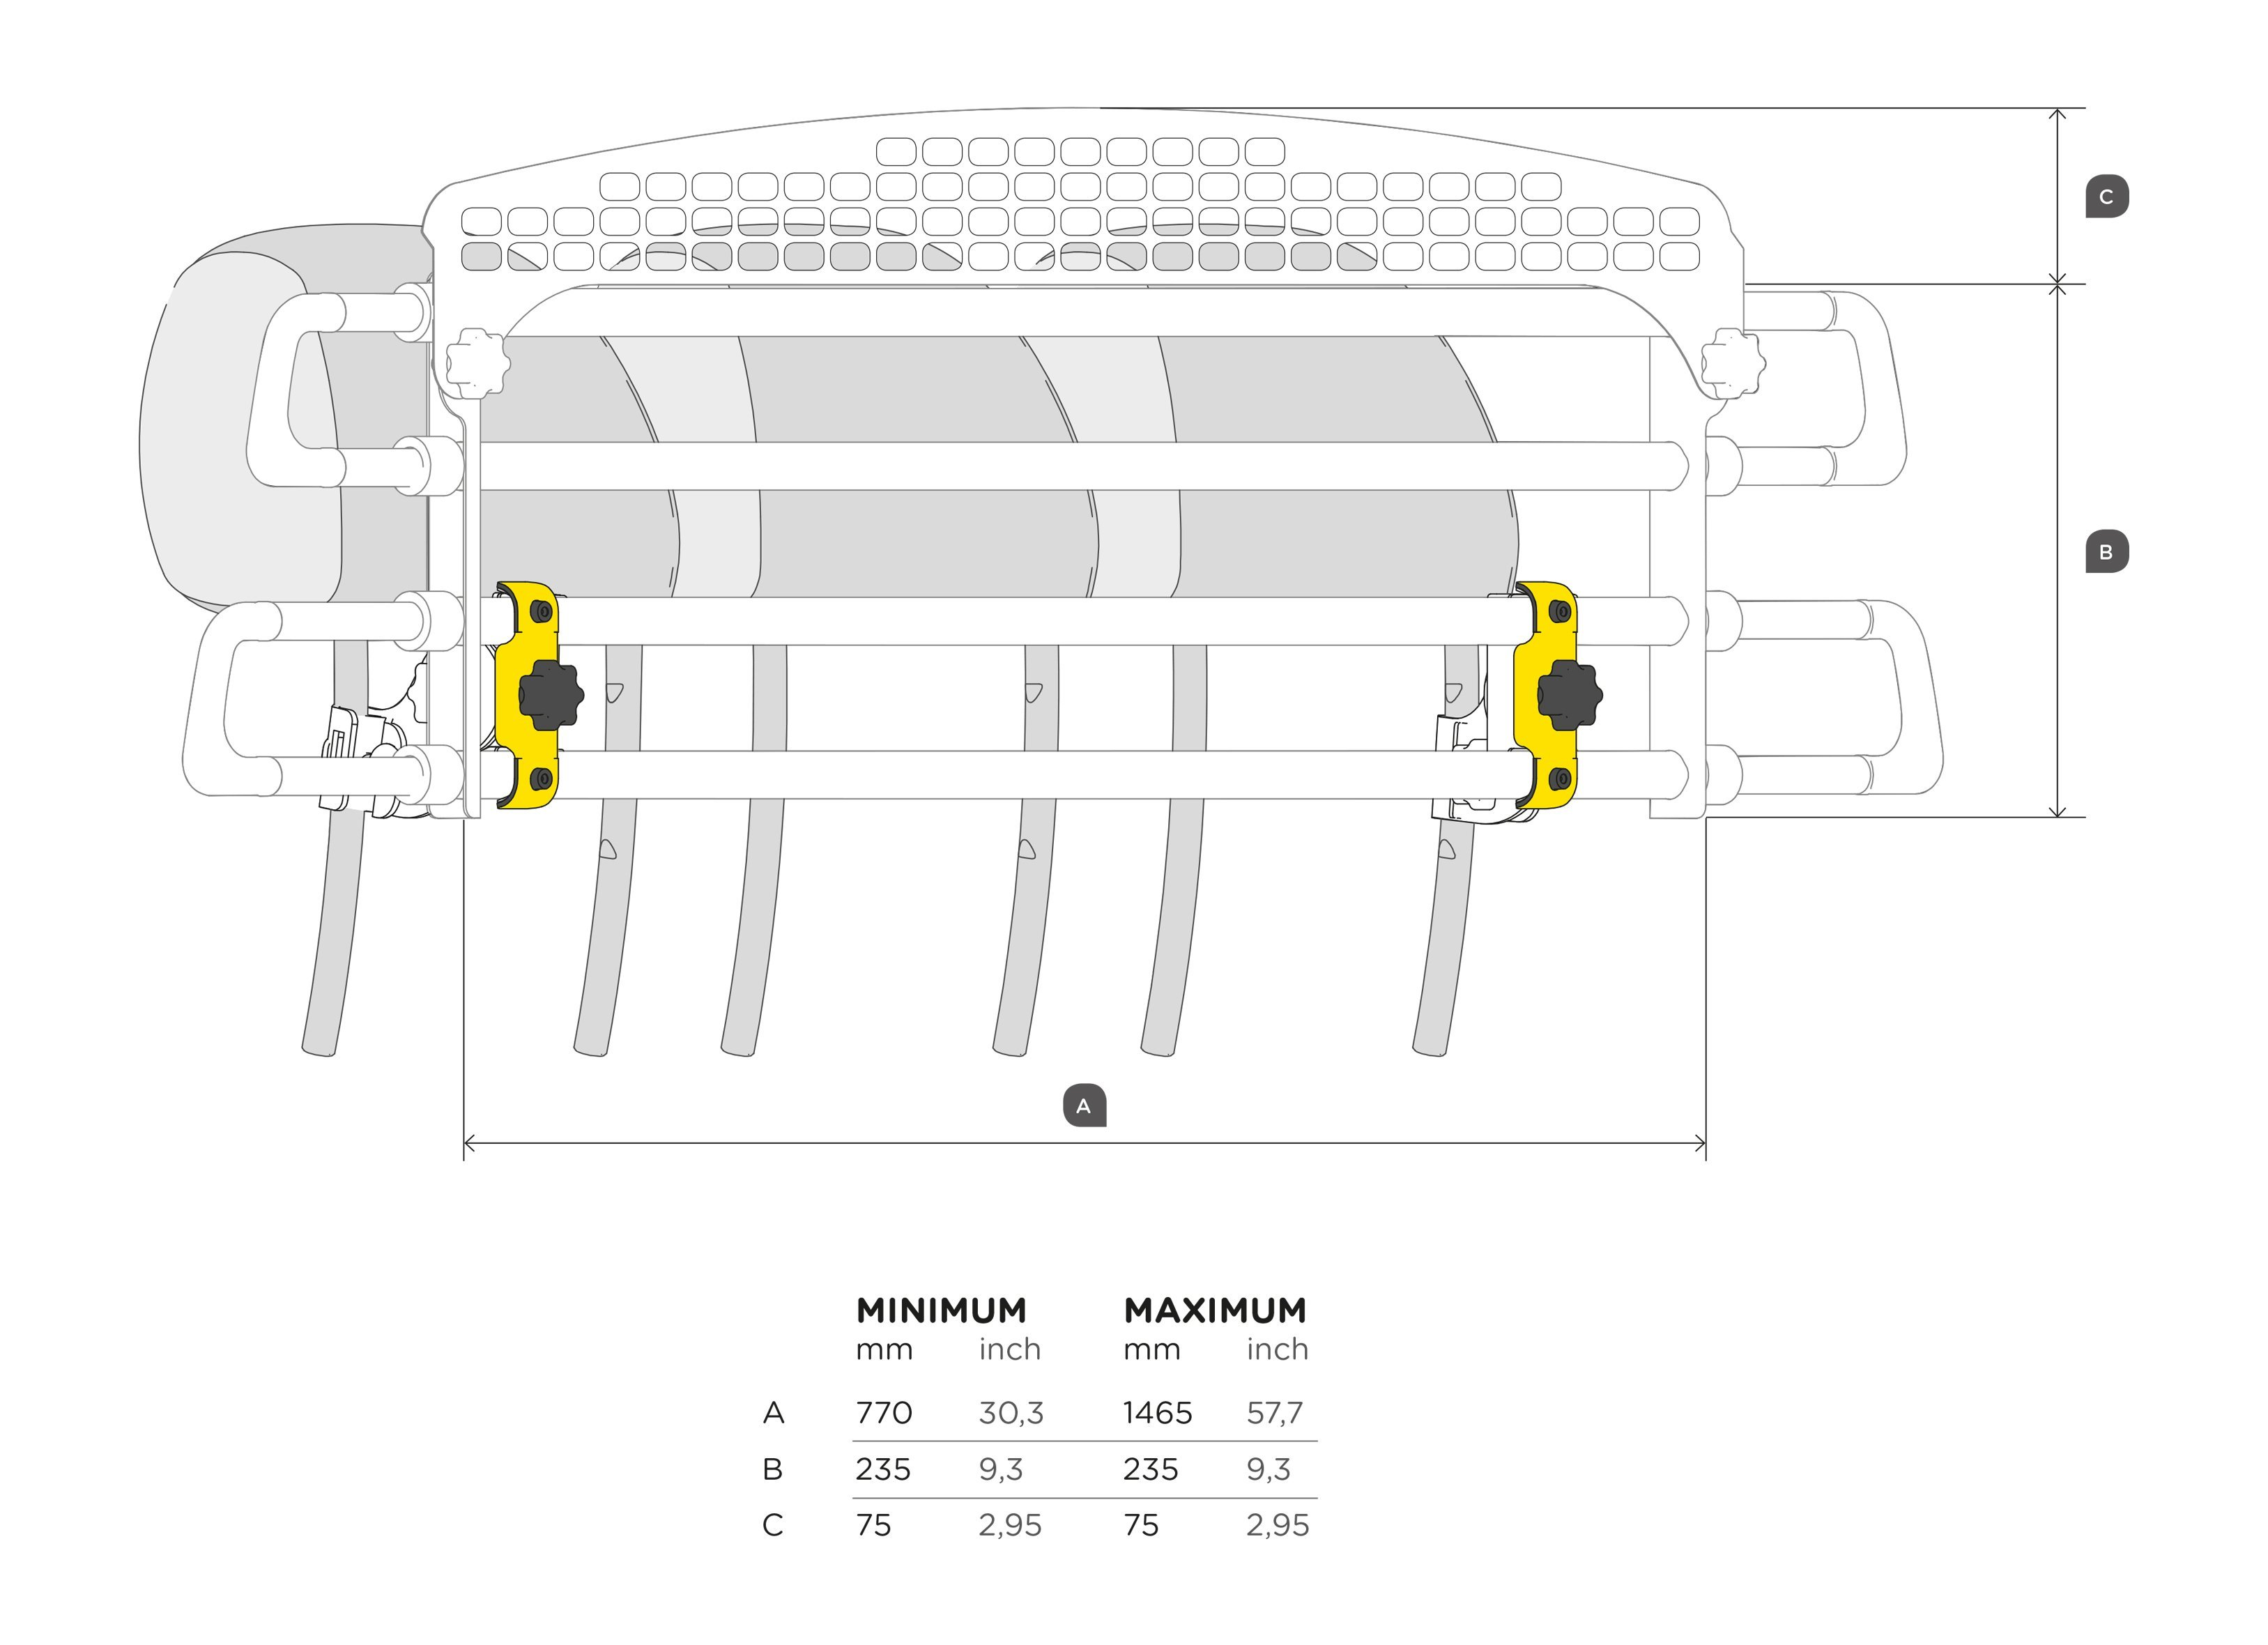 VarioBarrier headrest Dimensions